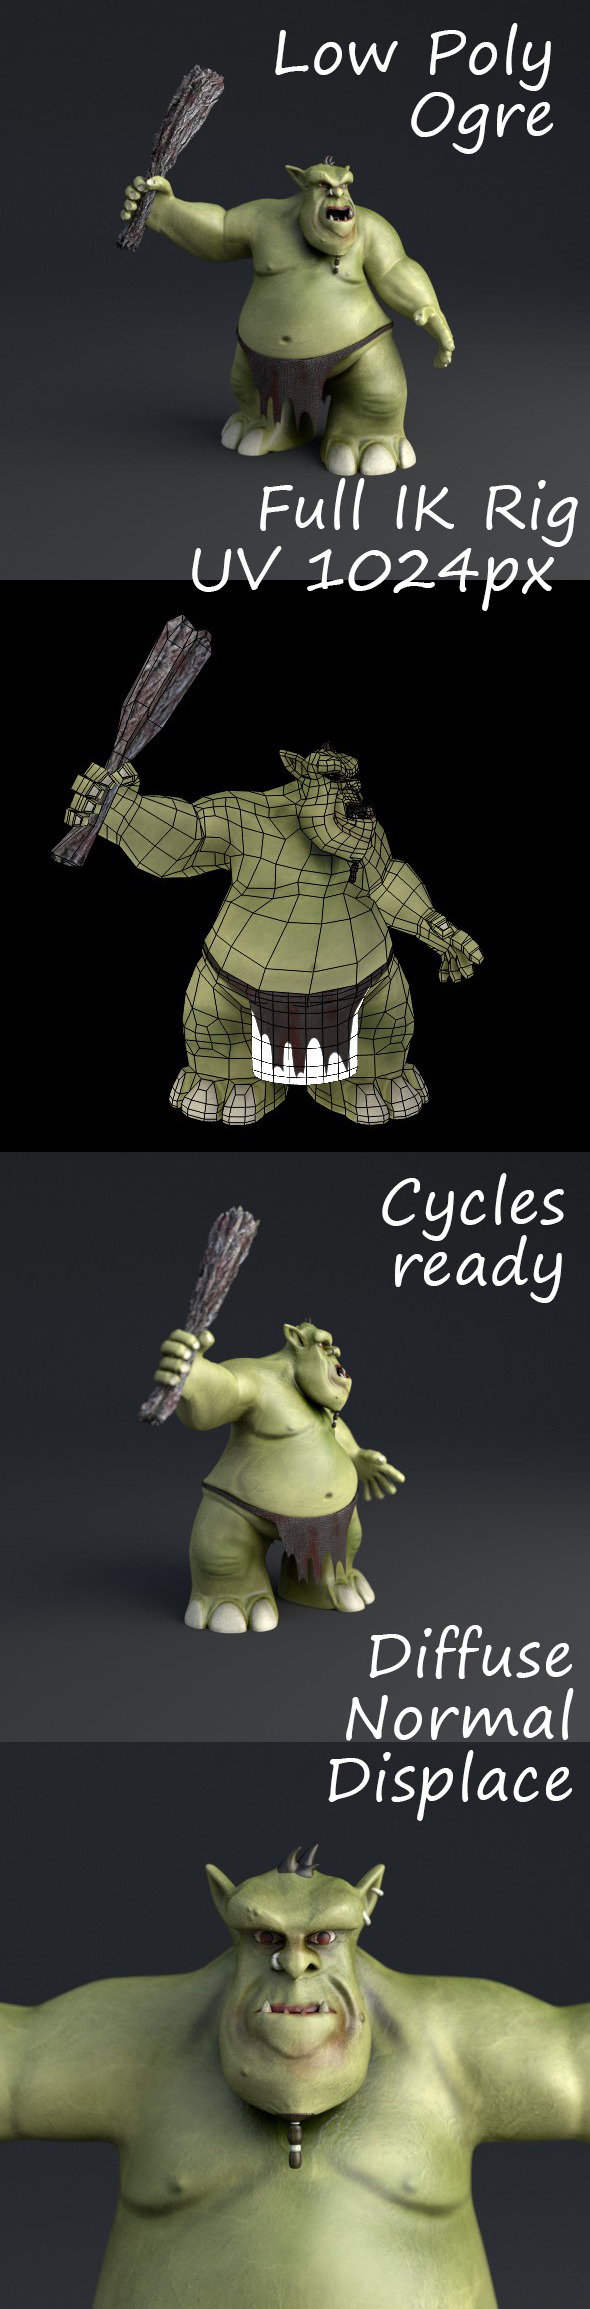 Ogre Rigged Lowpoly - 3DOcean Item for Sale